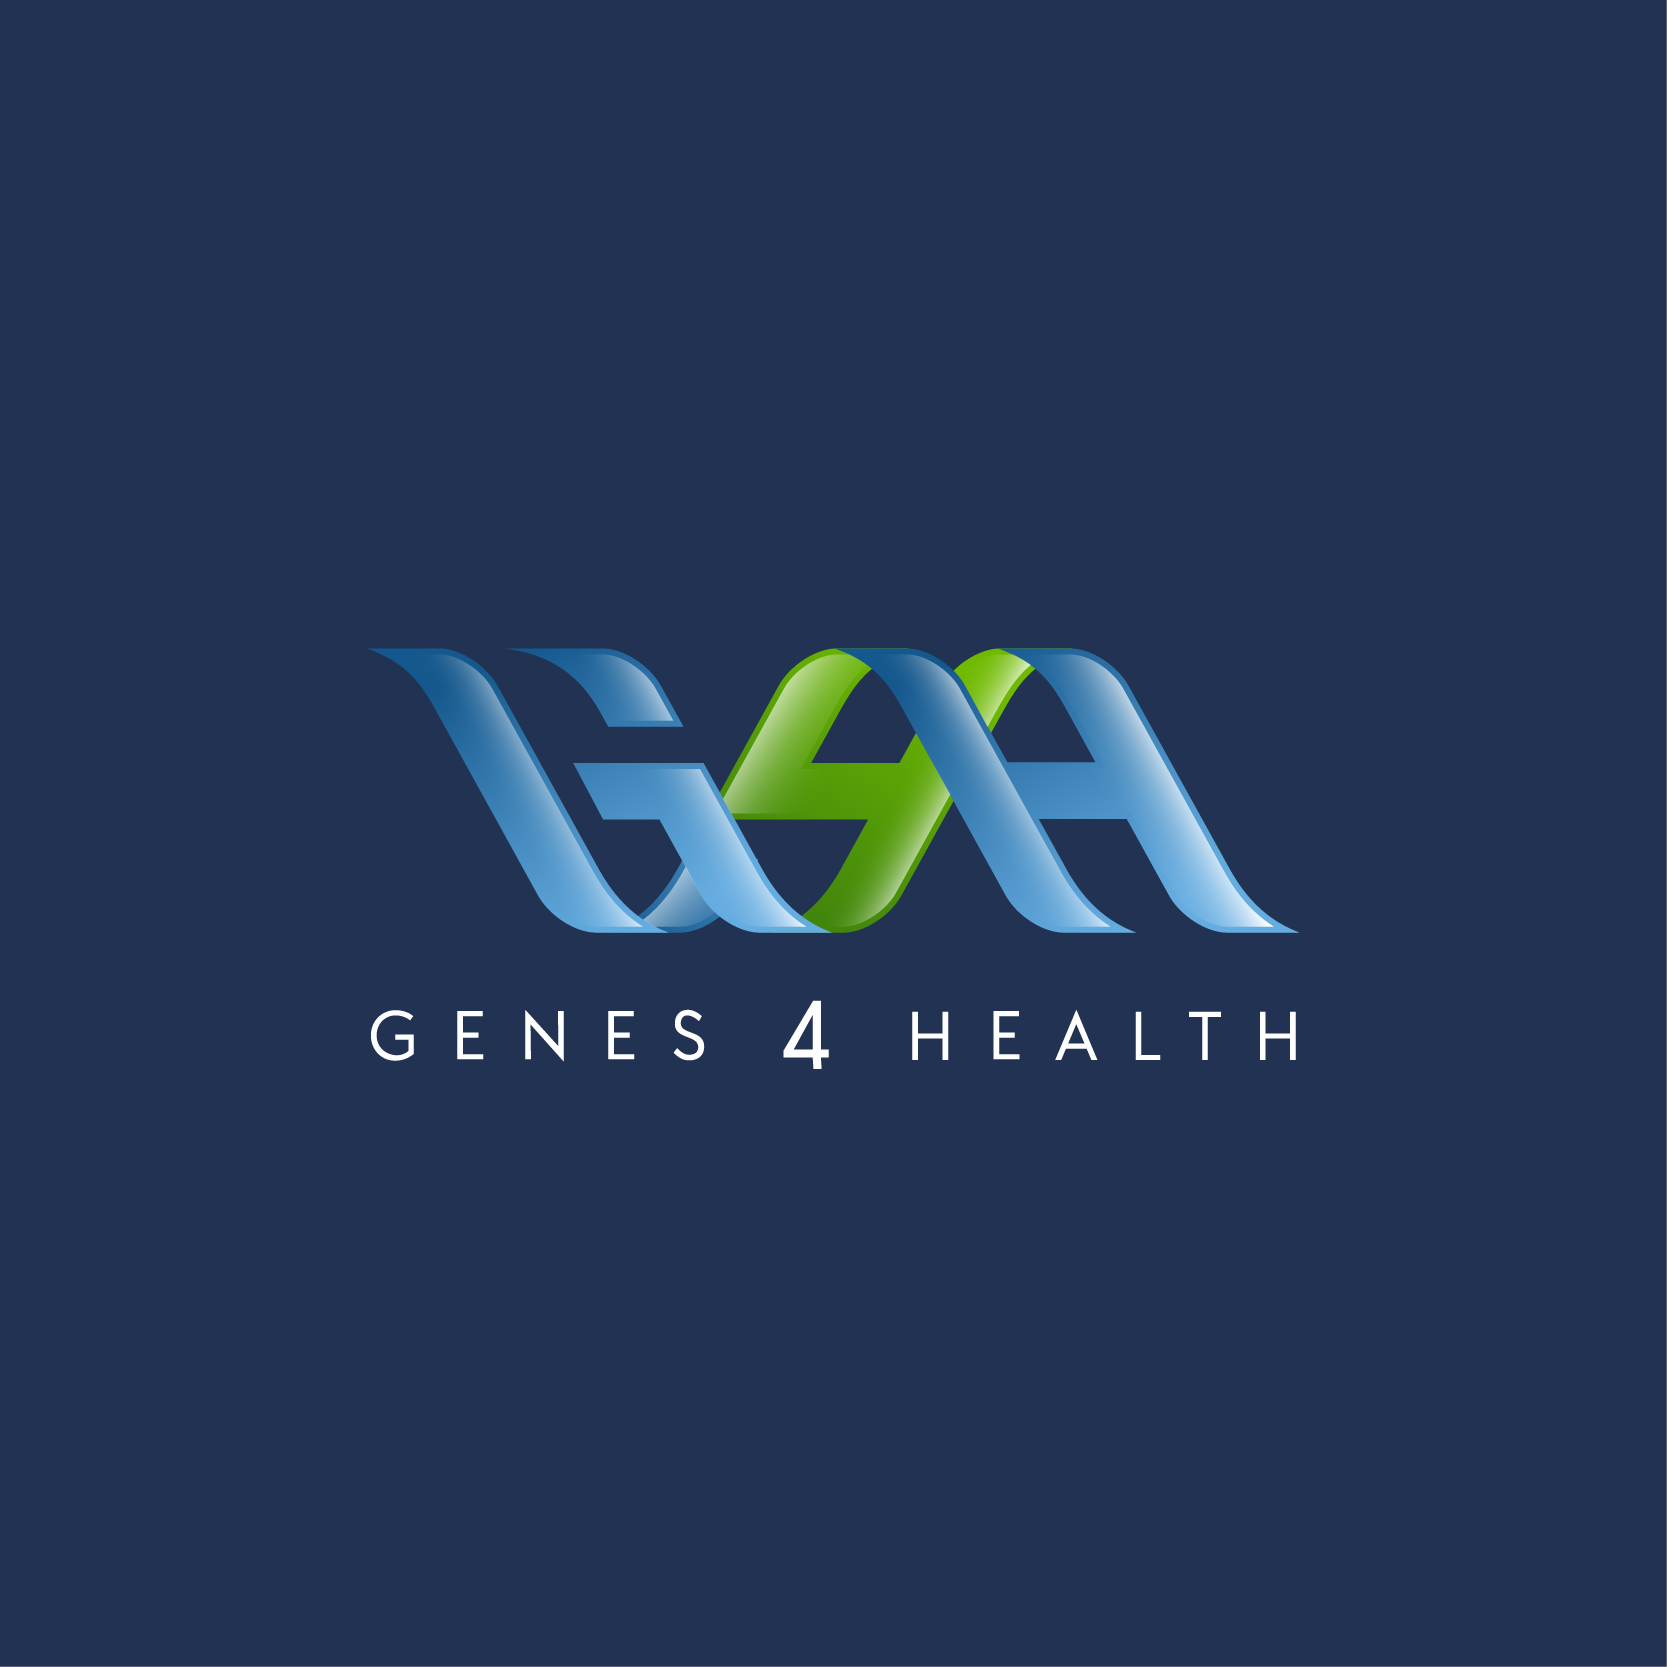 GENES 4 HEALTH (G4H) is looking for the perfect logo to start its activity